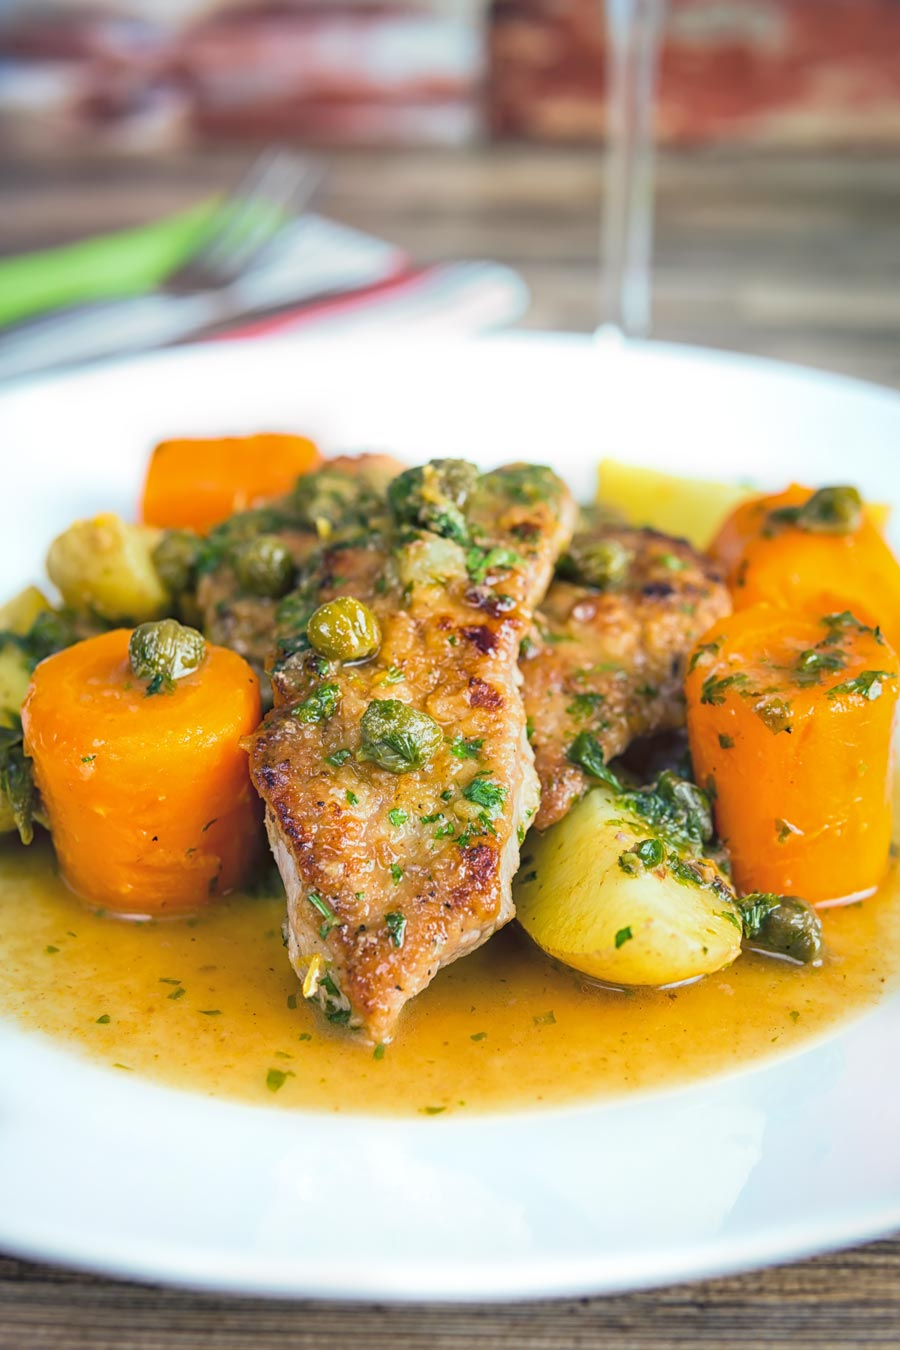 Veal scallopini takes a wonderful piece of veal escalope and combines it with a vibrant wine, caper and lemon sauce to create a delicious simple meal!